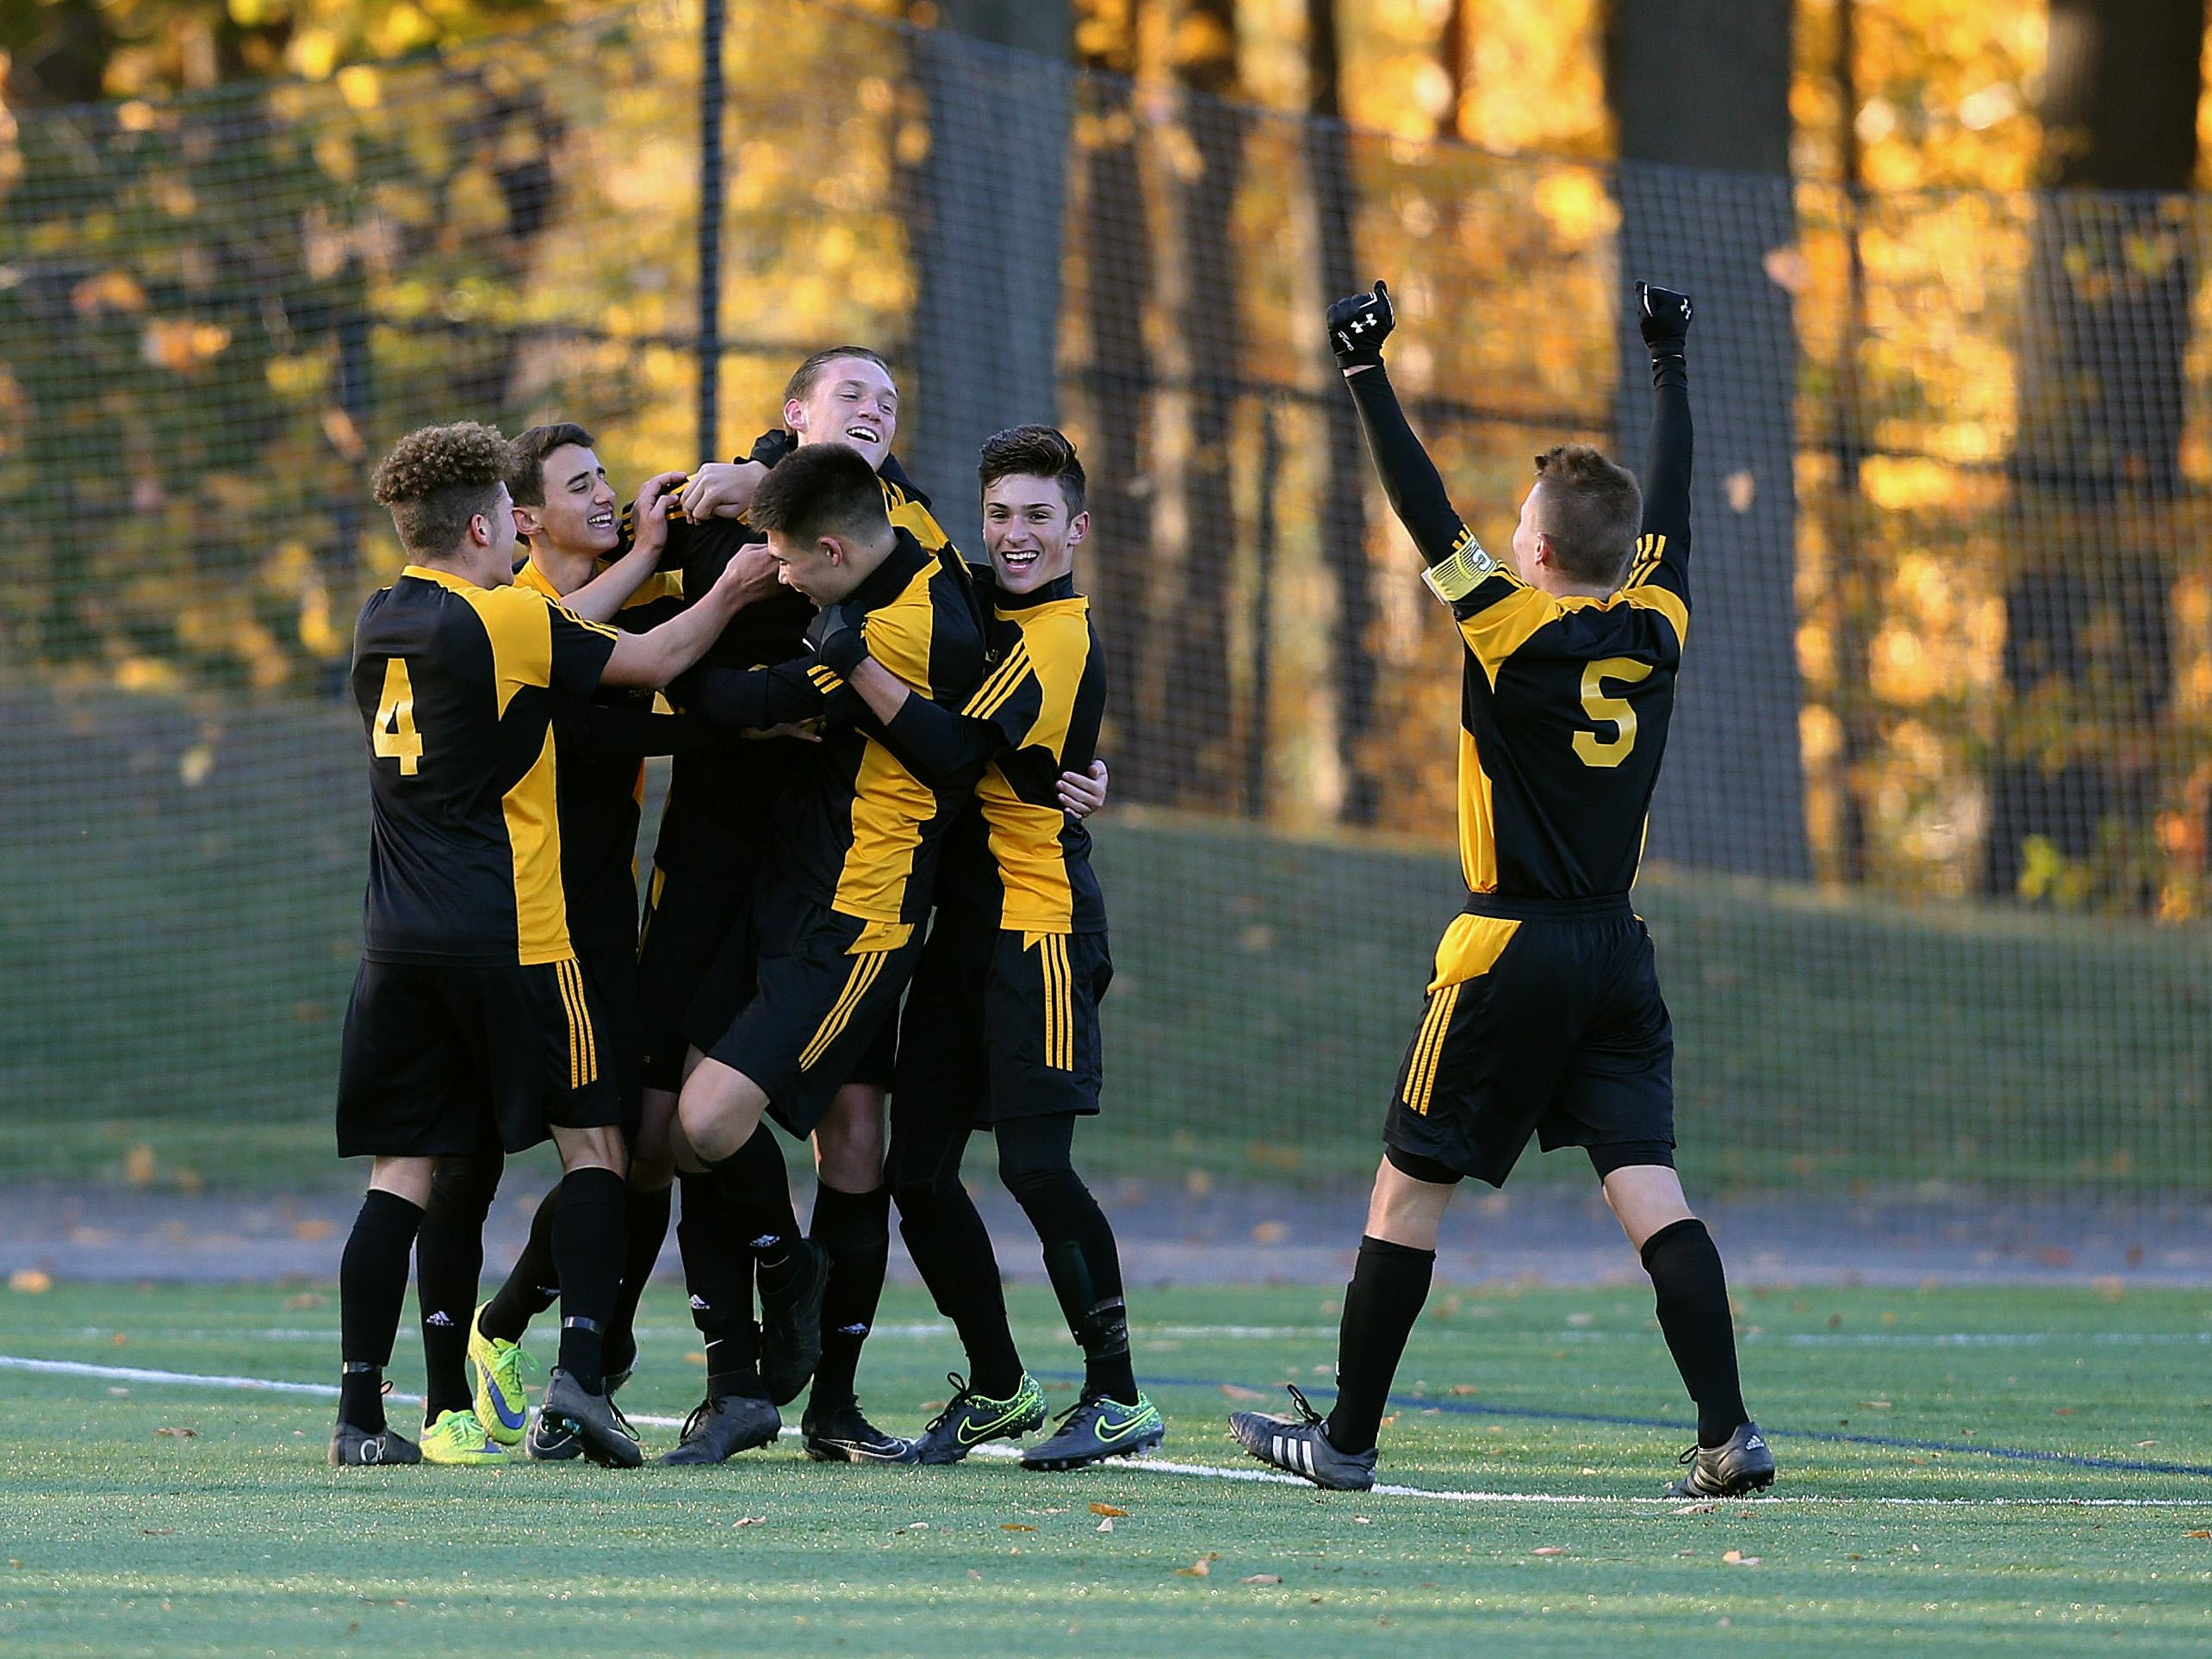 Greece Athena's Zach Koons (center) is mobbed by teammates after one of his two goals in the Class A1 final against Brockport. Athena went on to win 2-0.